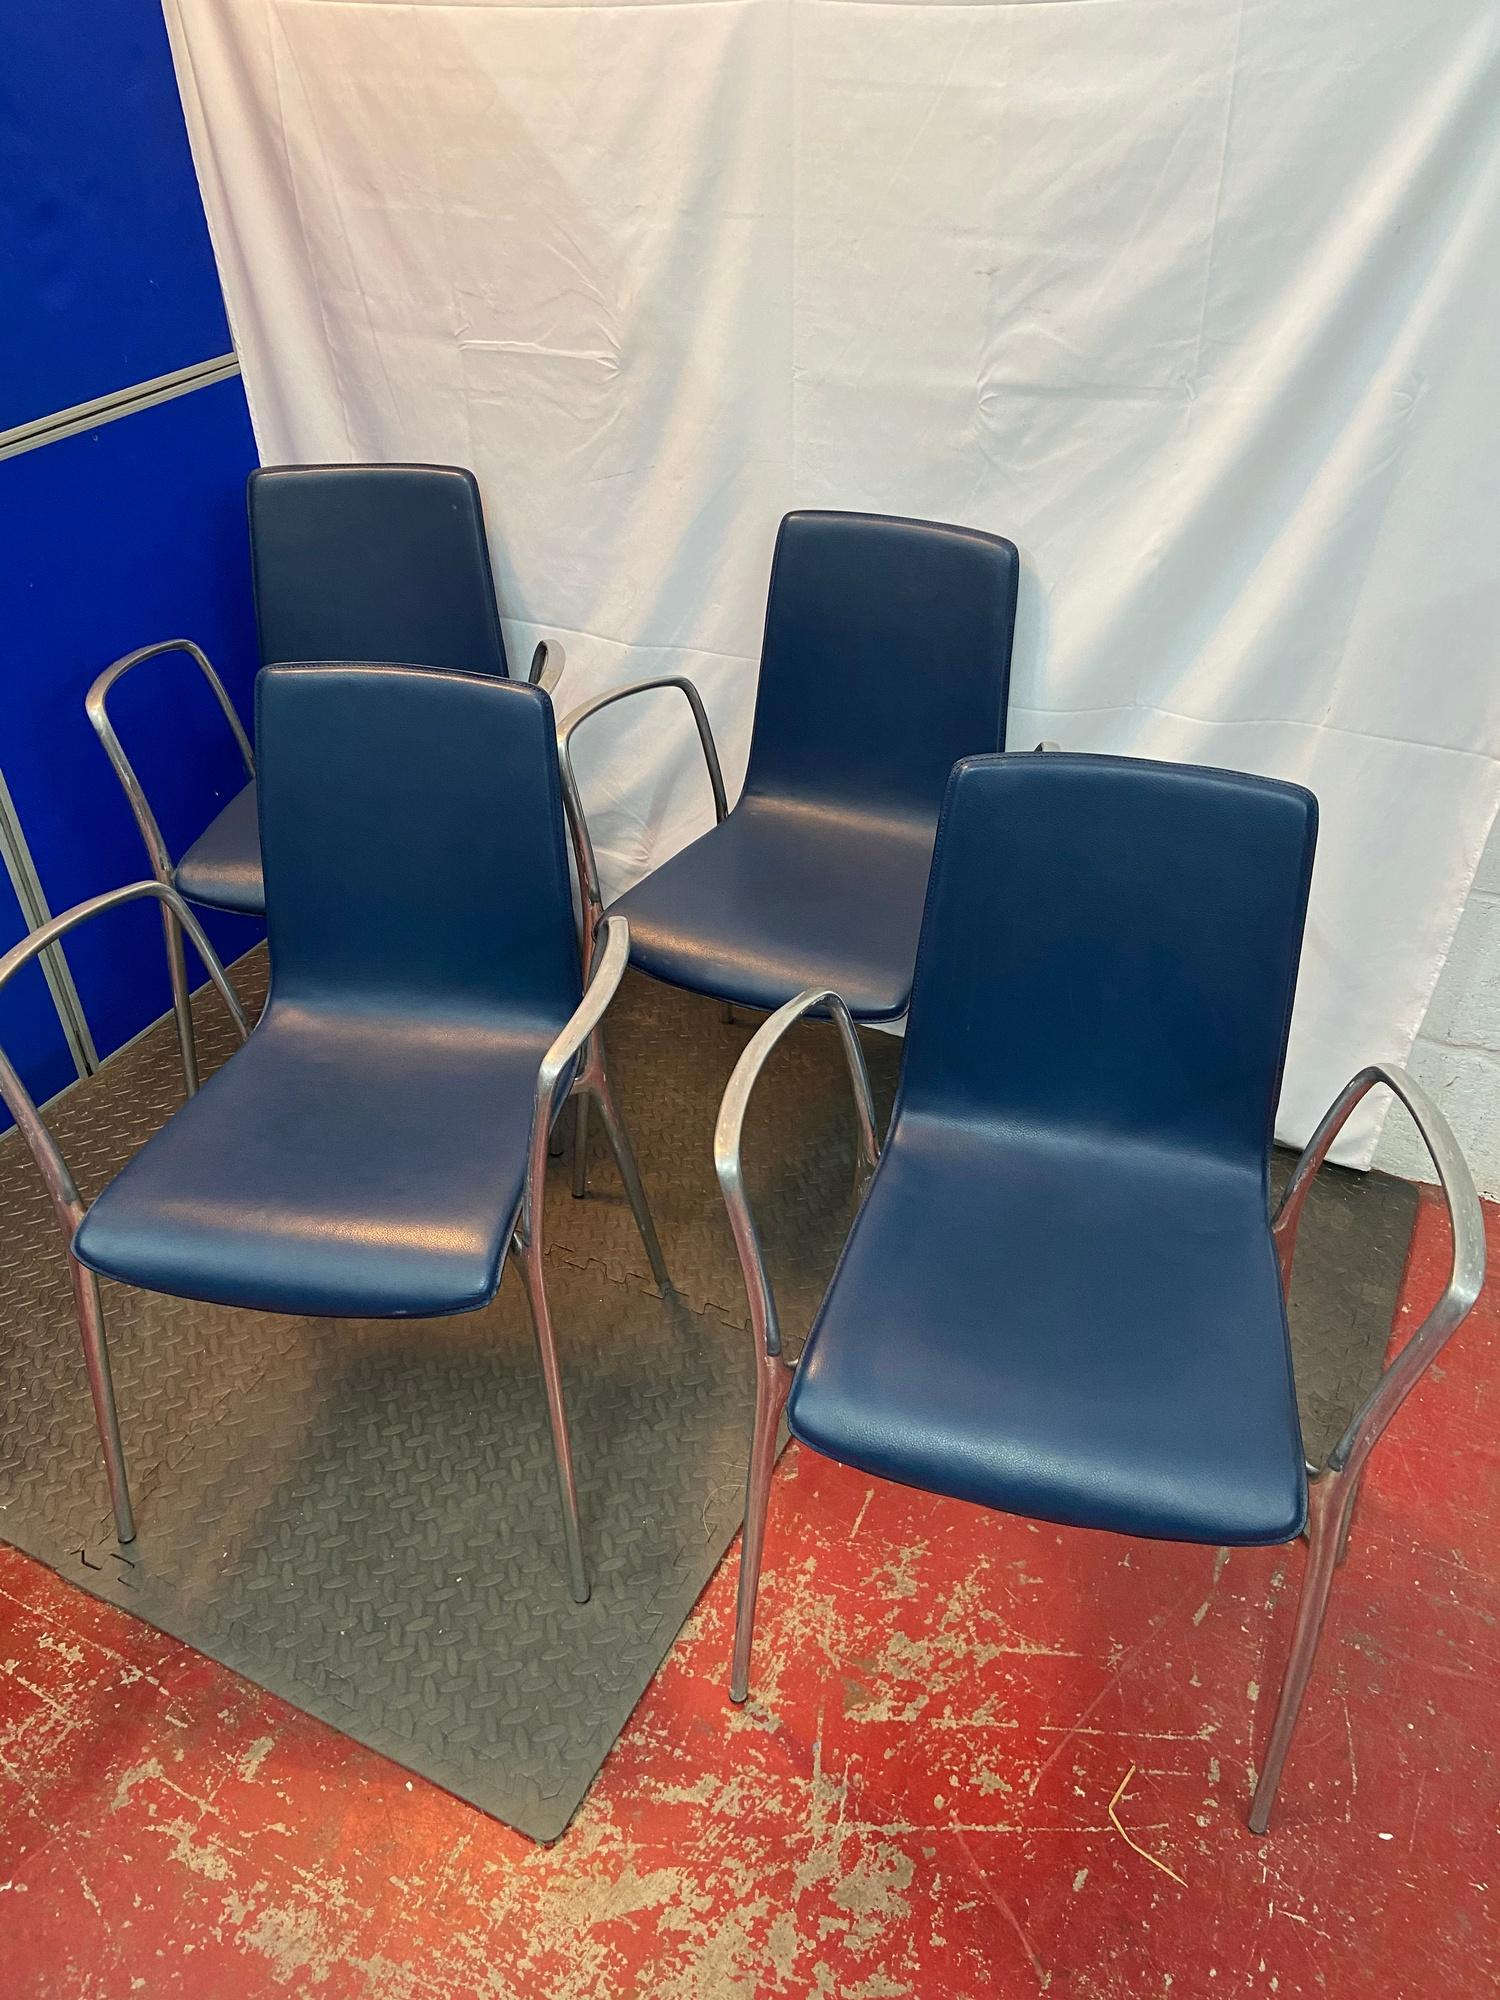 A Set of four Spanish designer Akaba dining chairs designed by Jorge Pensi. Blue leather material